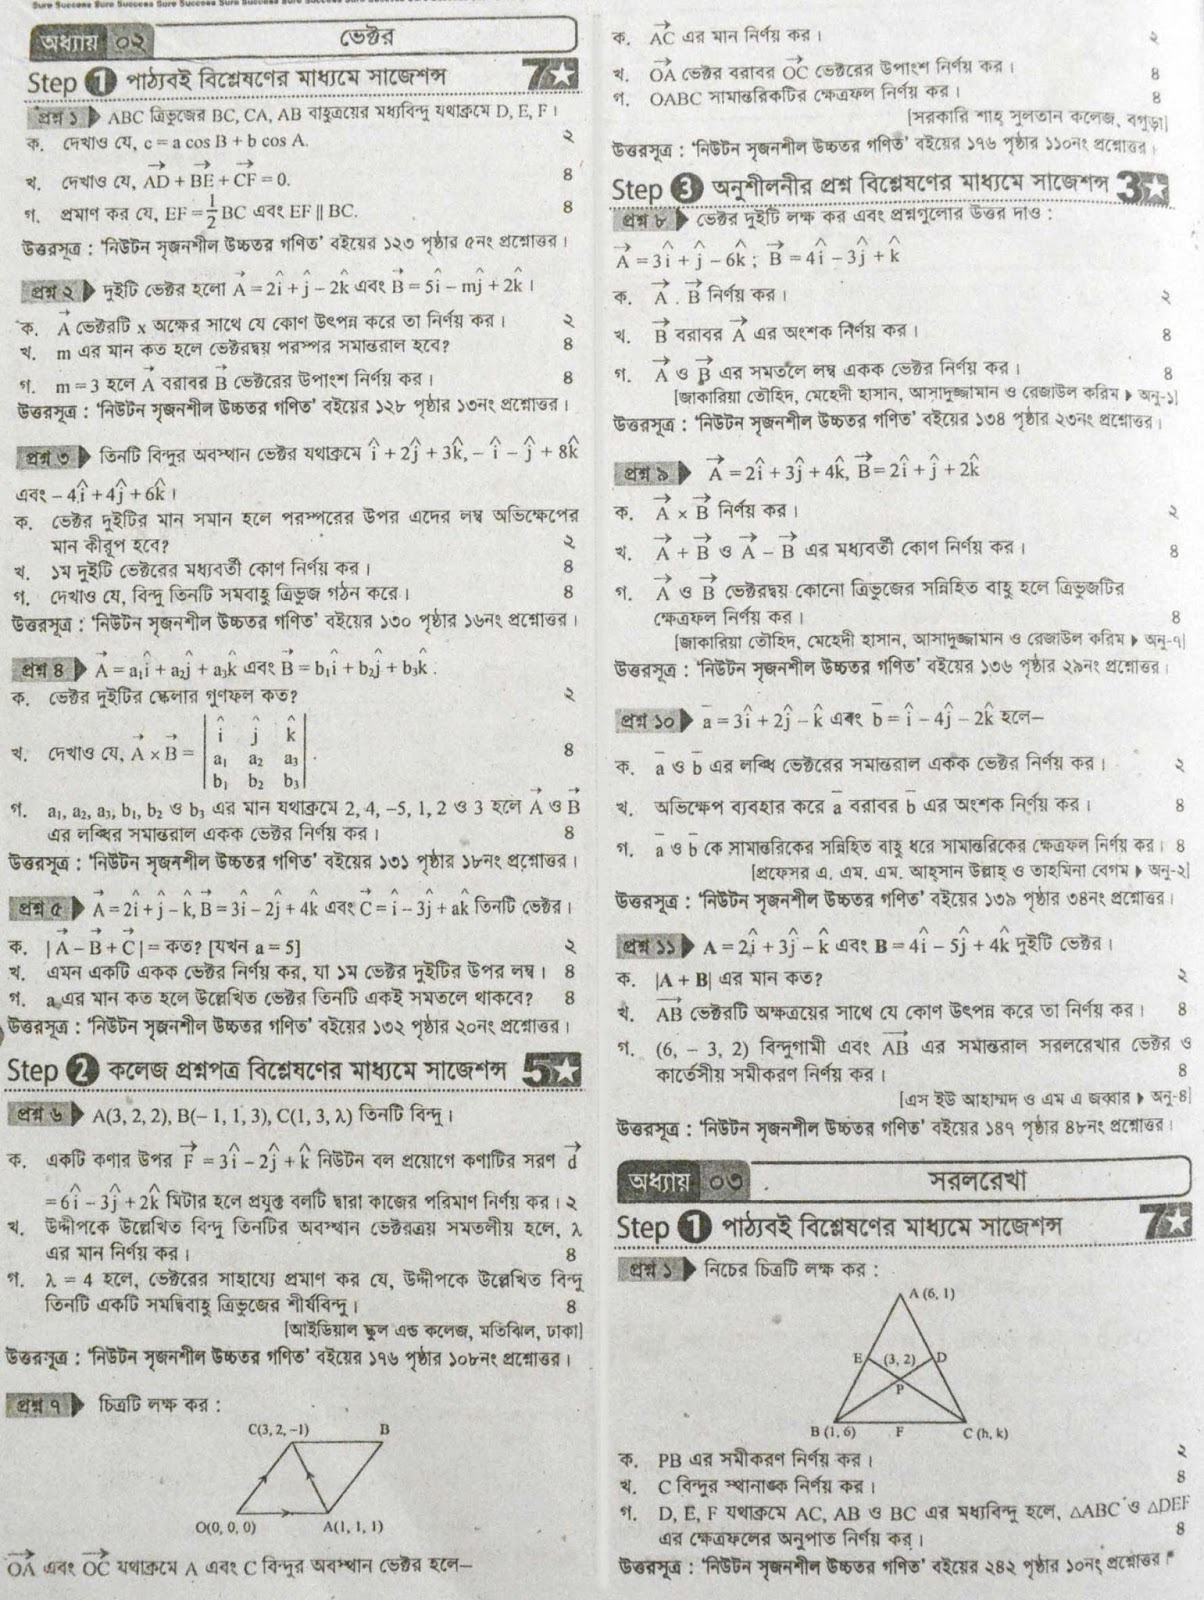 hsc Mathematics 1st Paper suggestion, exam question paper, model question, mcq question, question pattern, preparation for dhaka board, all boards